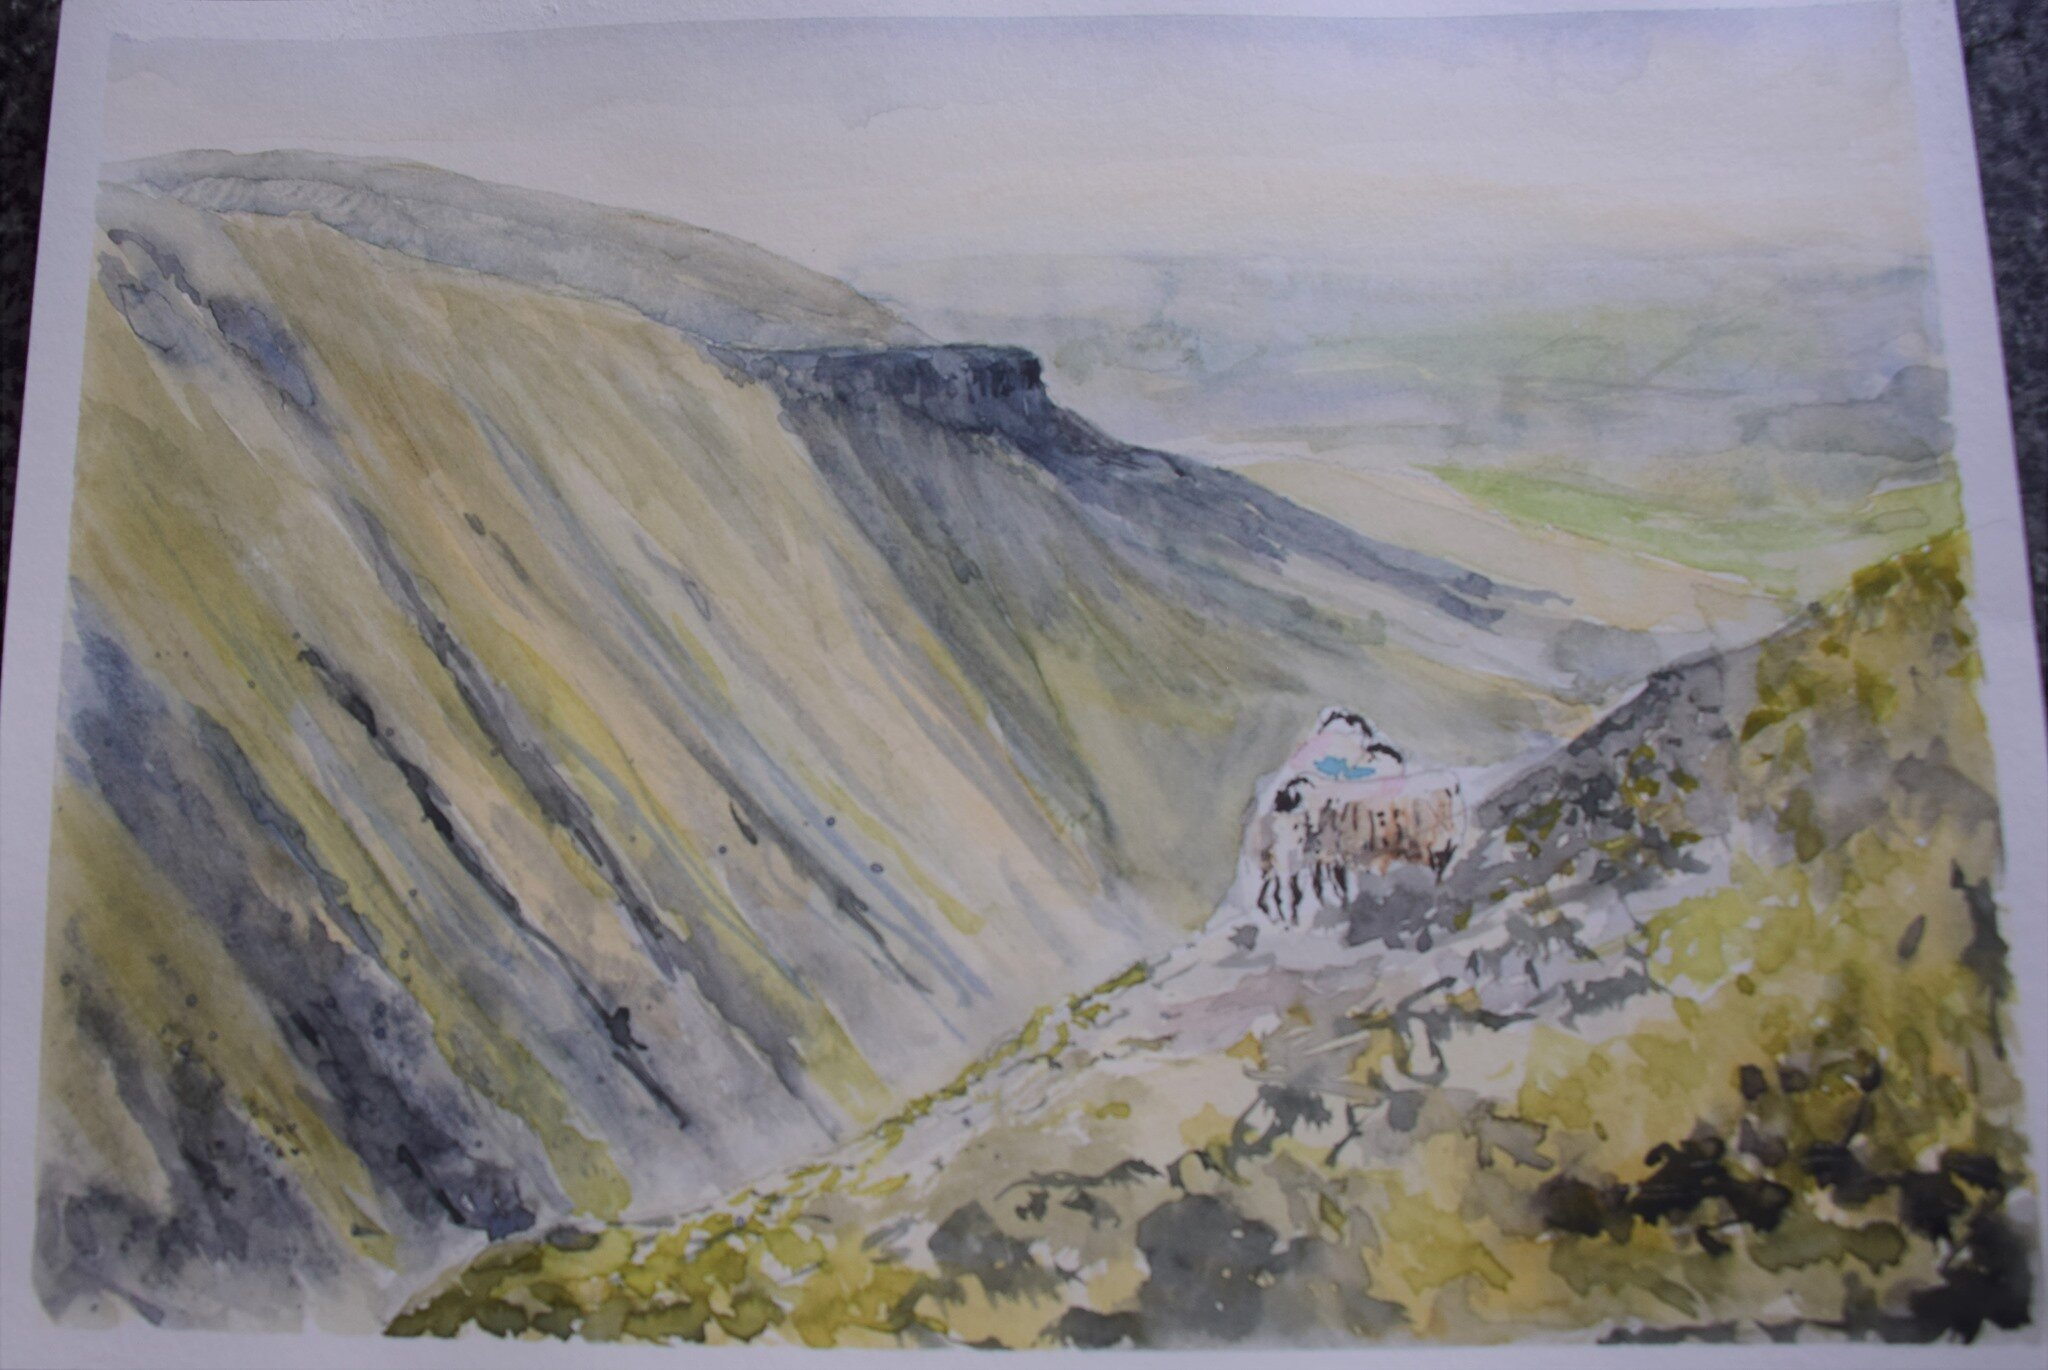 High Cup - I'm very new at watercolour, but I thought I might make an effort - it's such a stunning place. Can't say I've done it justice but the painting is more fun being on here than stuck in the dark in a cardboard folder! - Frances Ipson